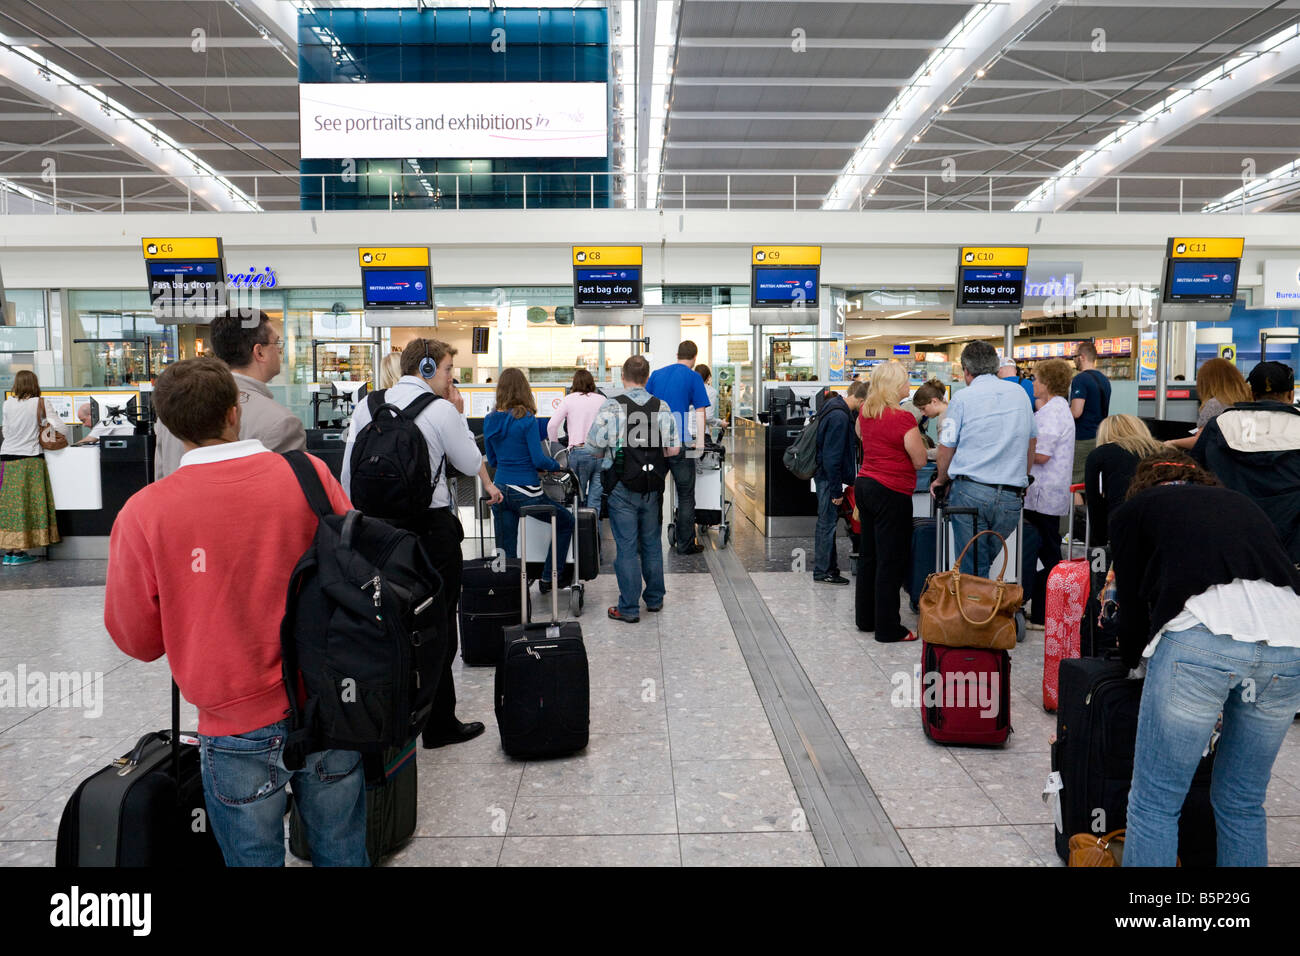 self check in and bag drop, departure level, Terminal 5, Heathrow, London, England - Stock Image